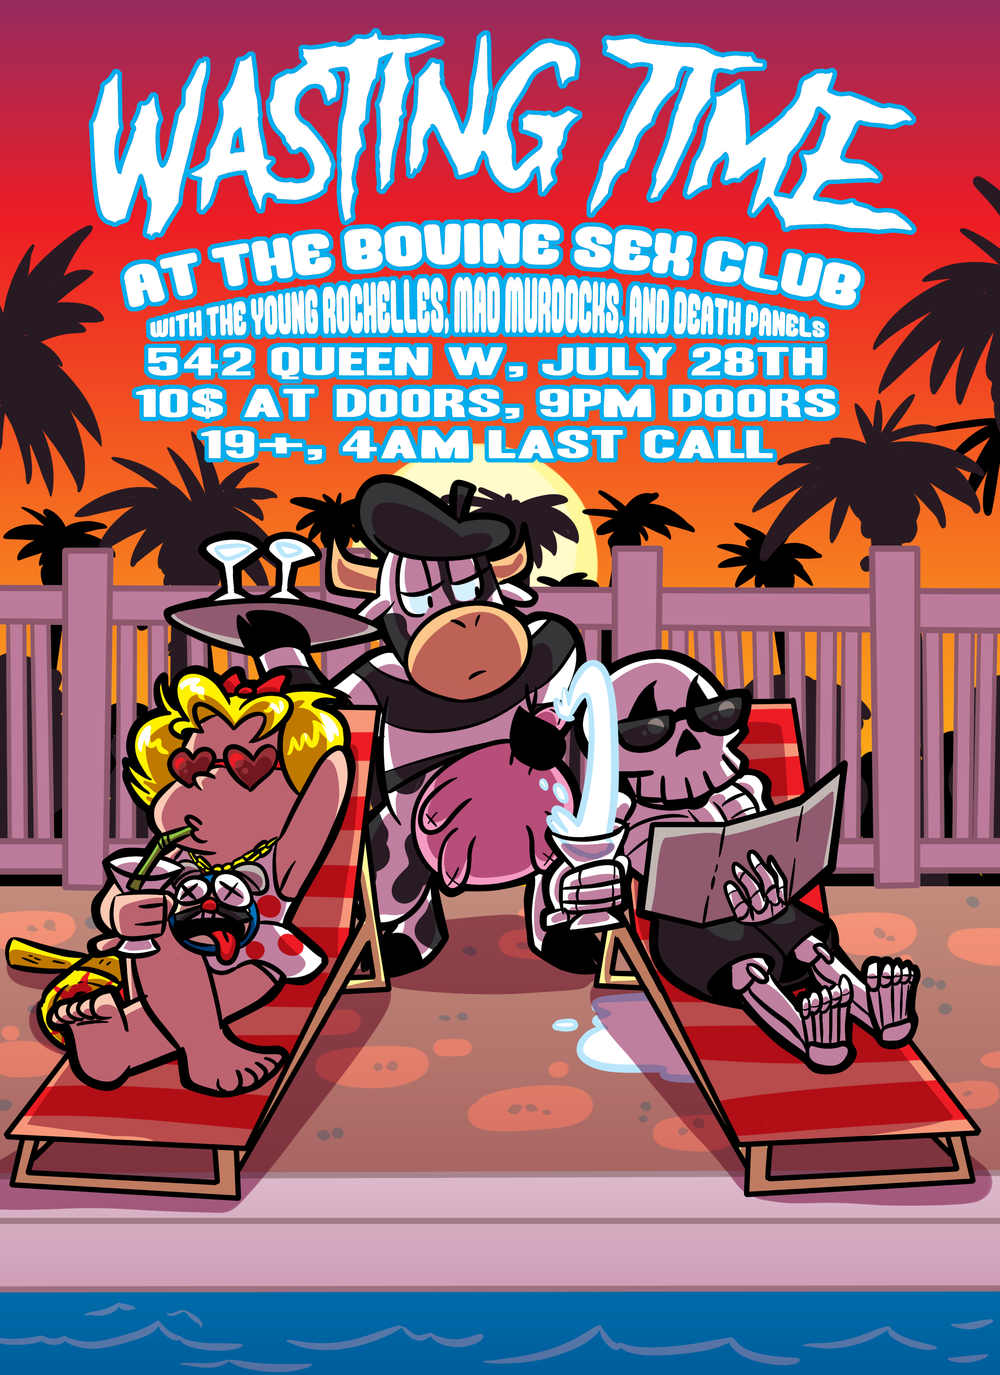 Bovine_Sex_Club_Poster_7-28.png